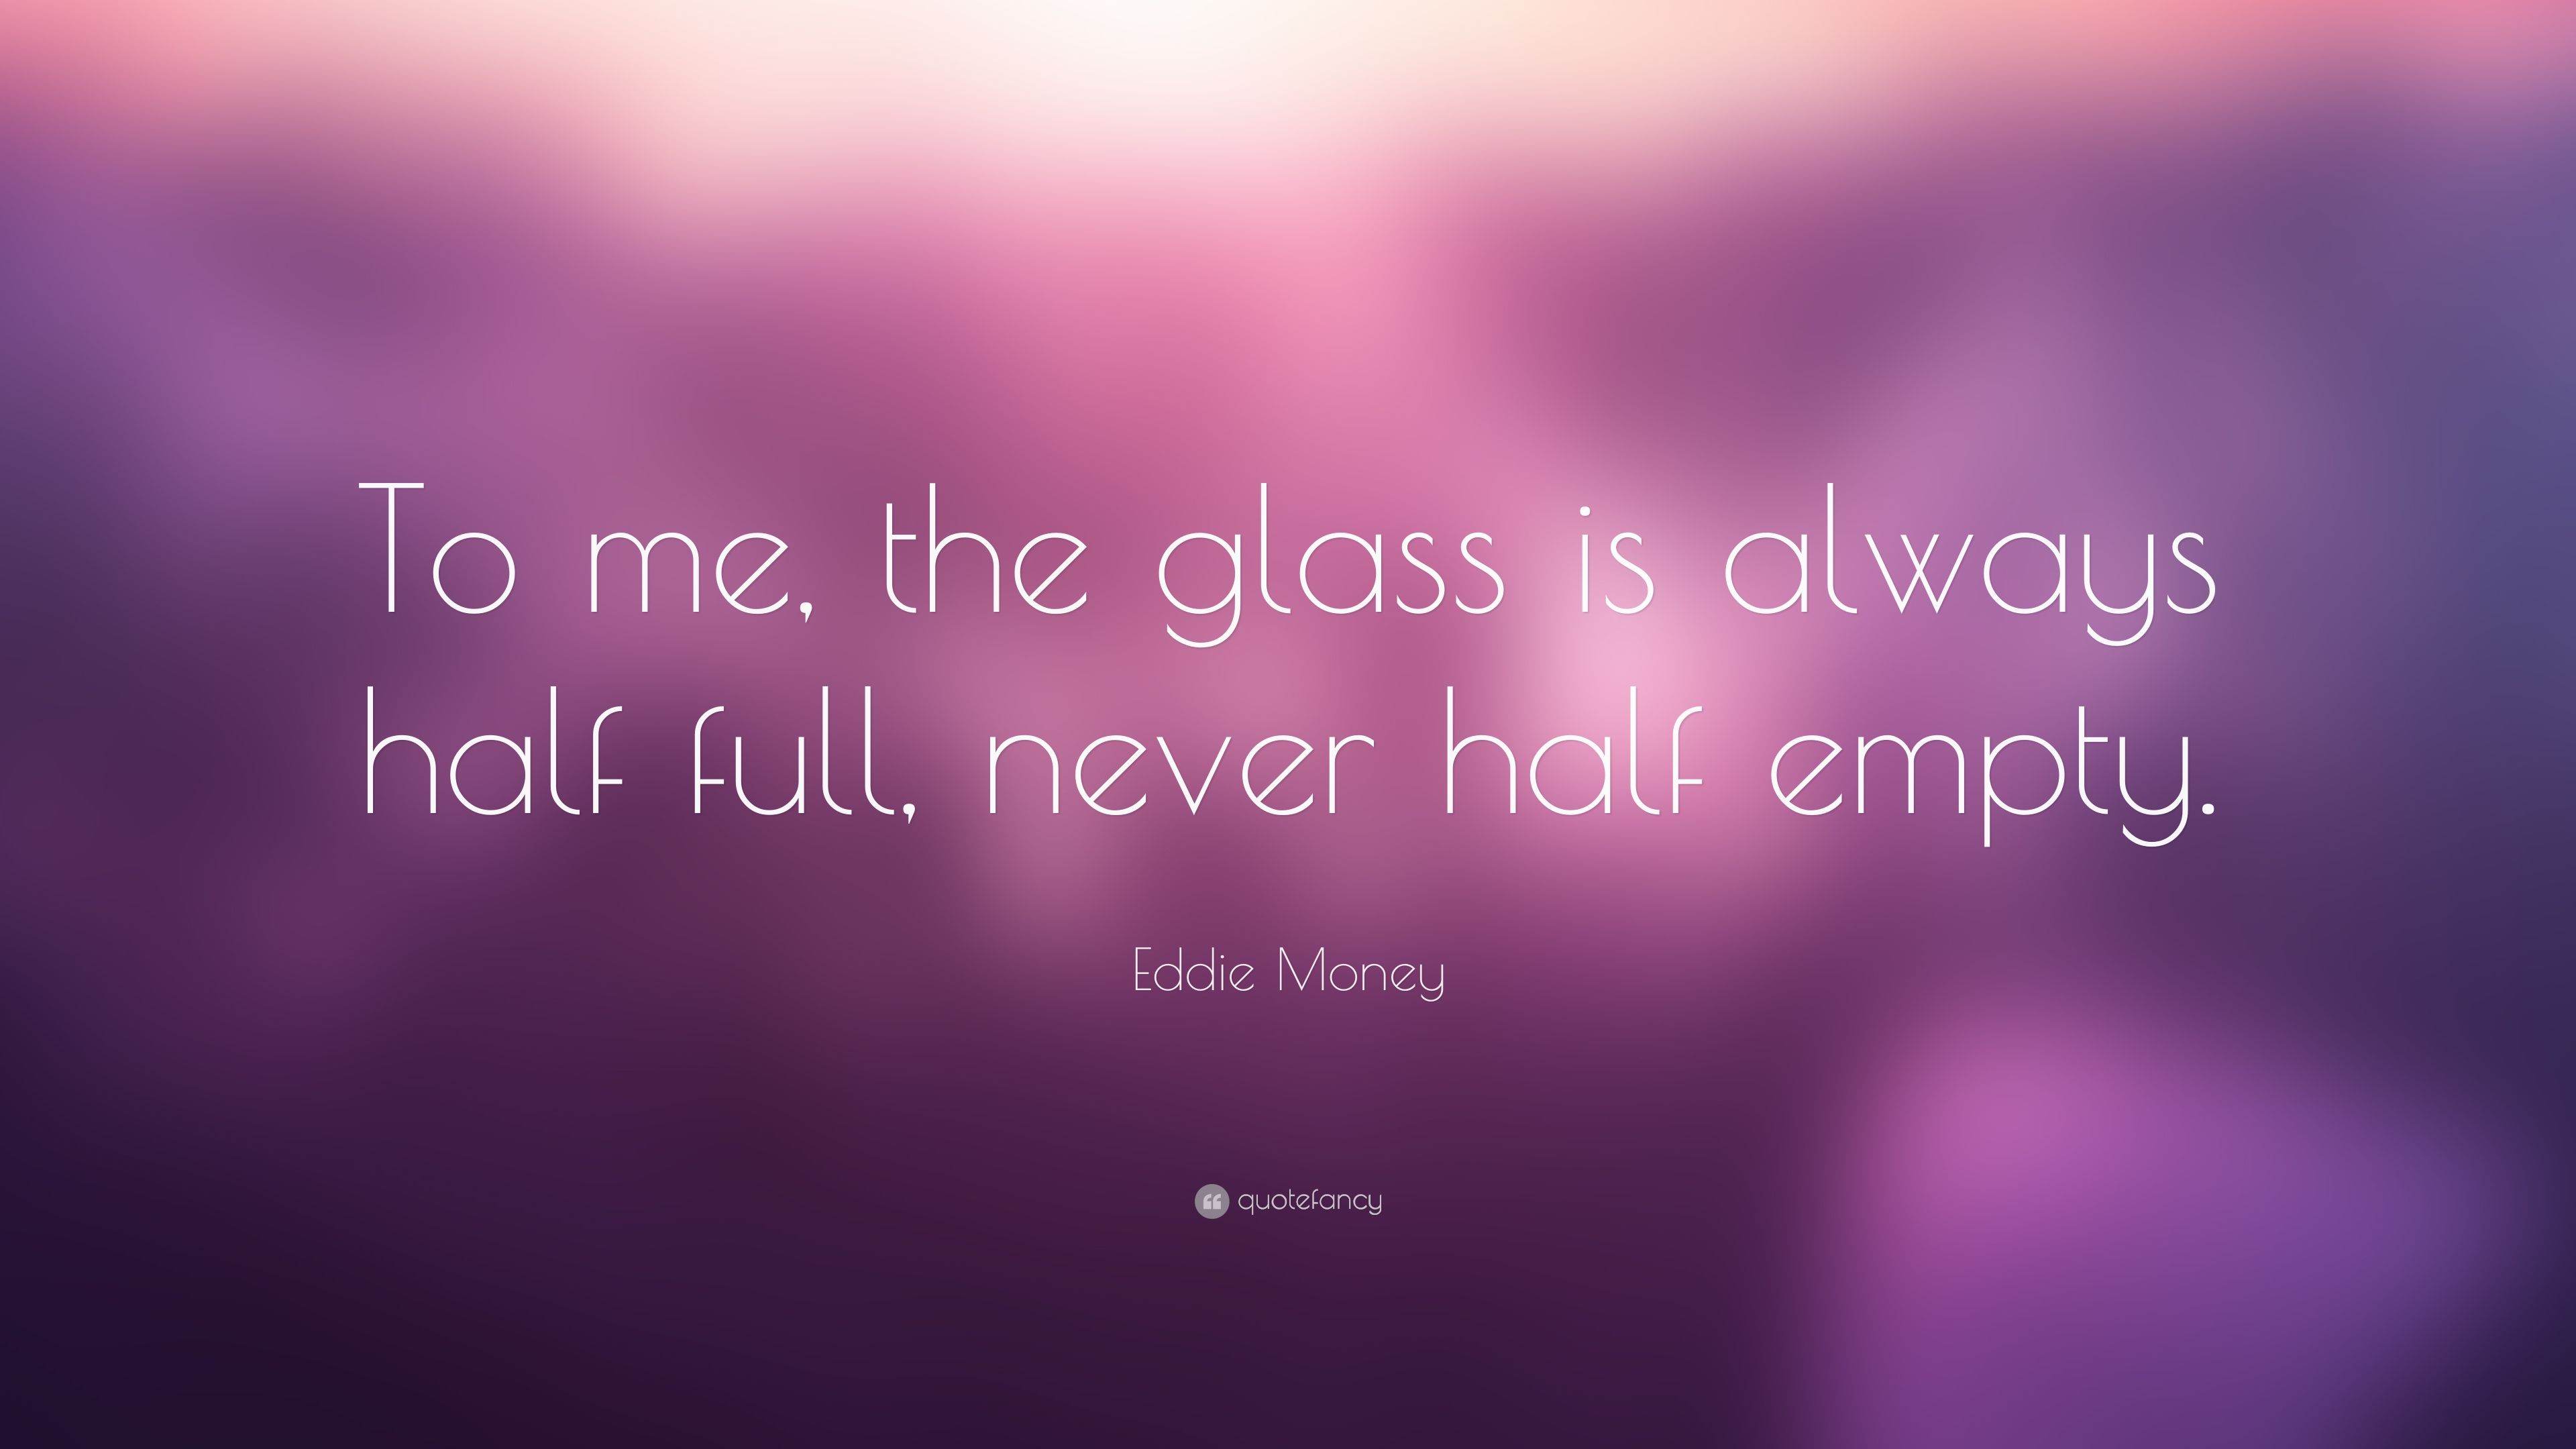 Eddie Money Quote To Me The Glass Is Always Half Full Never Half